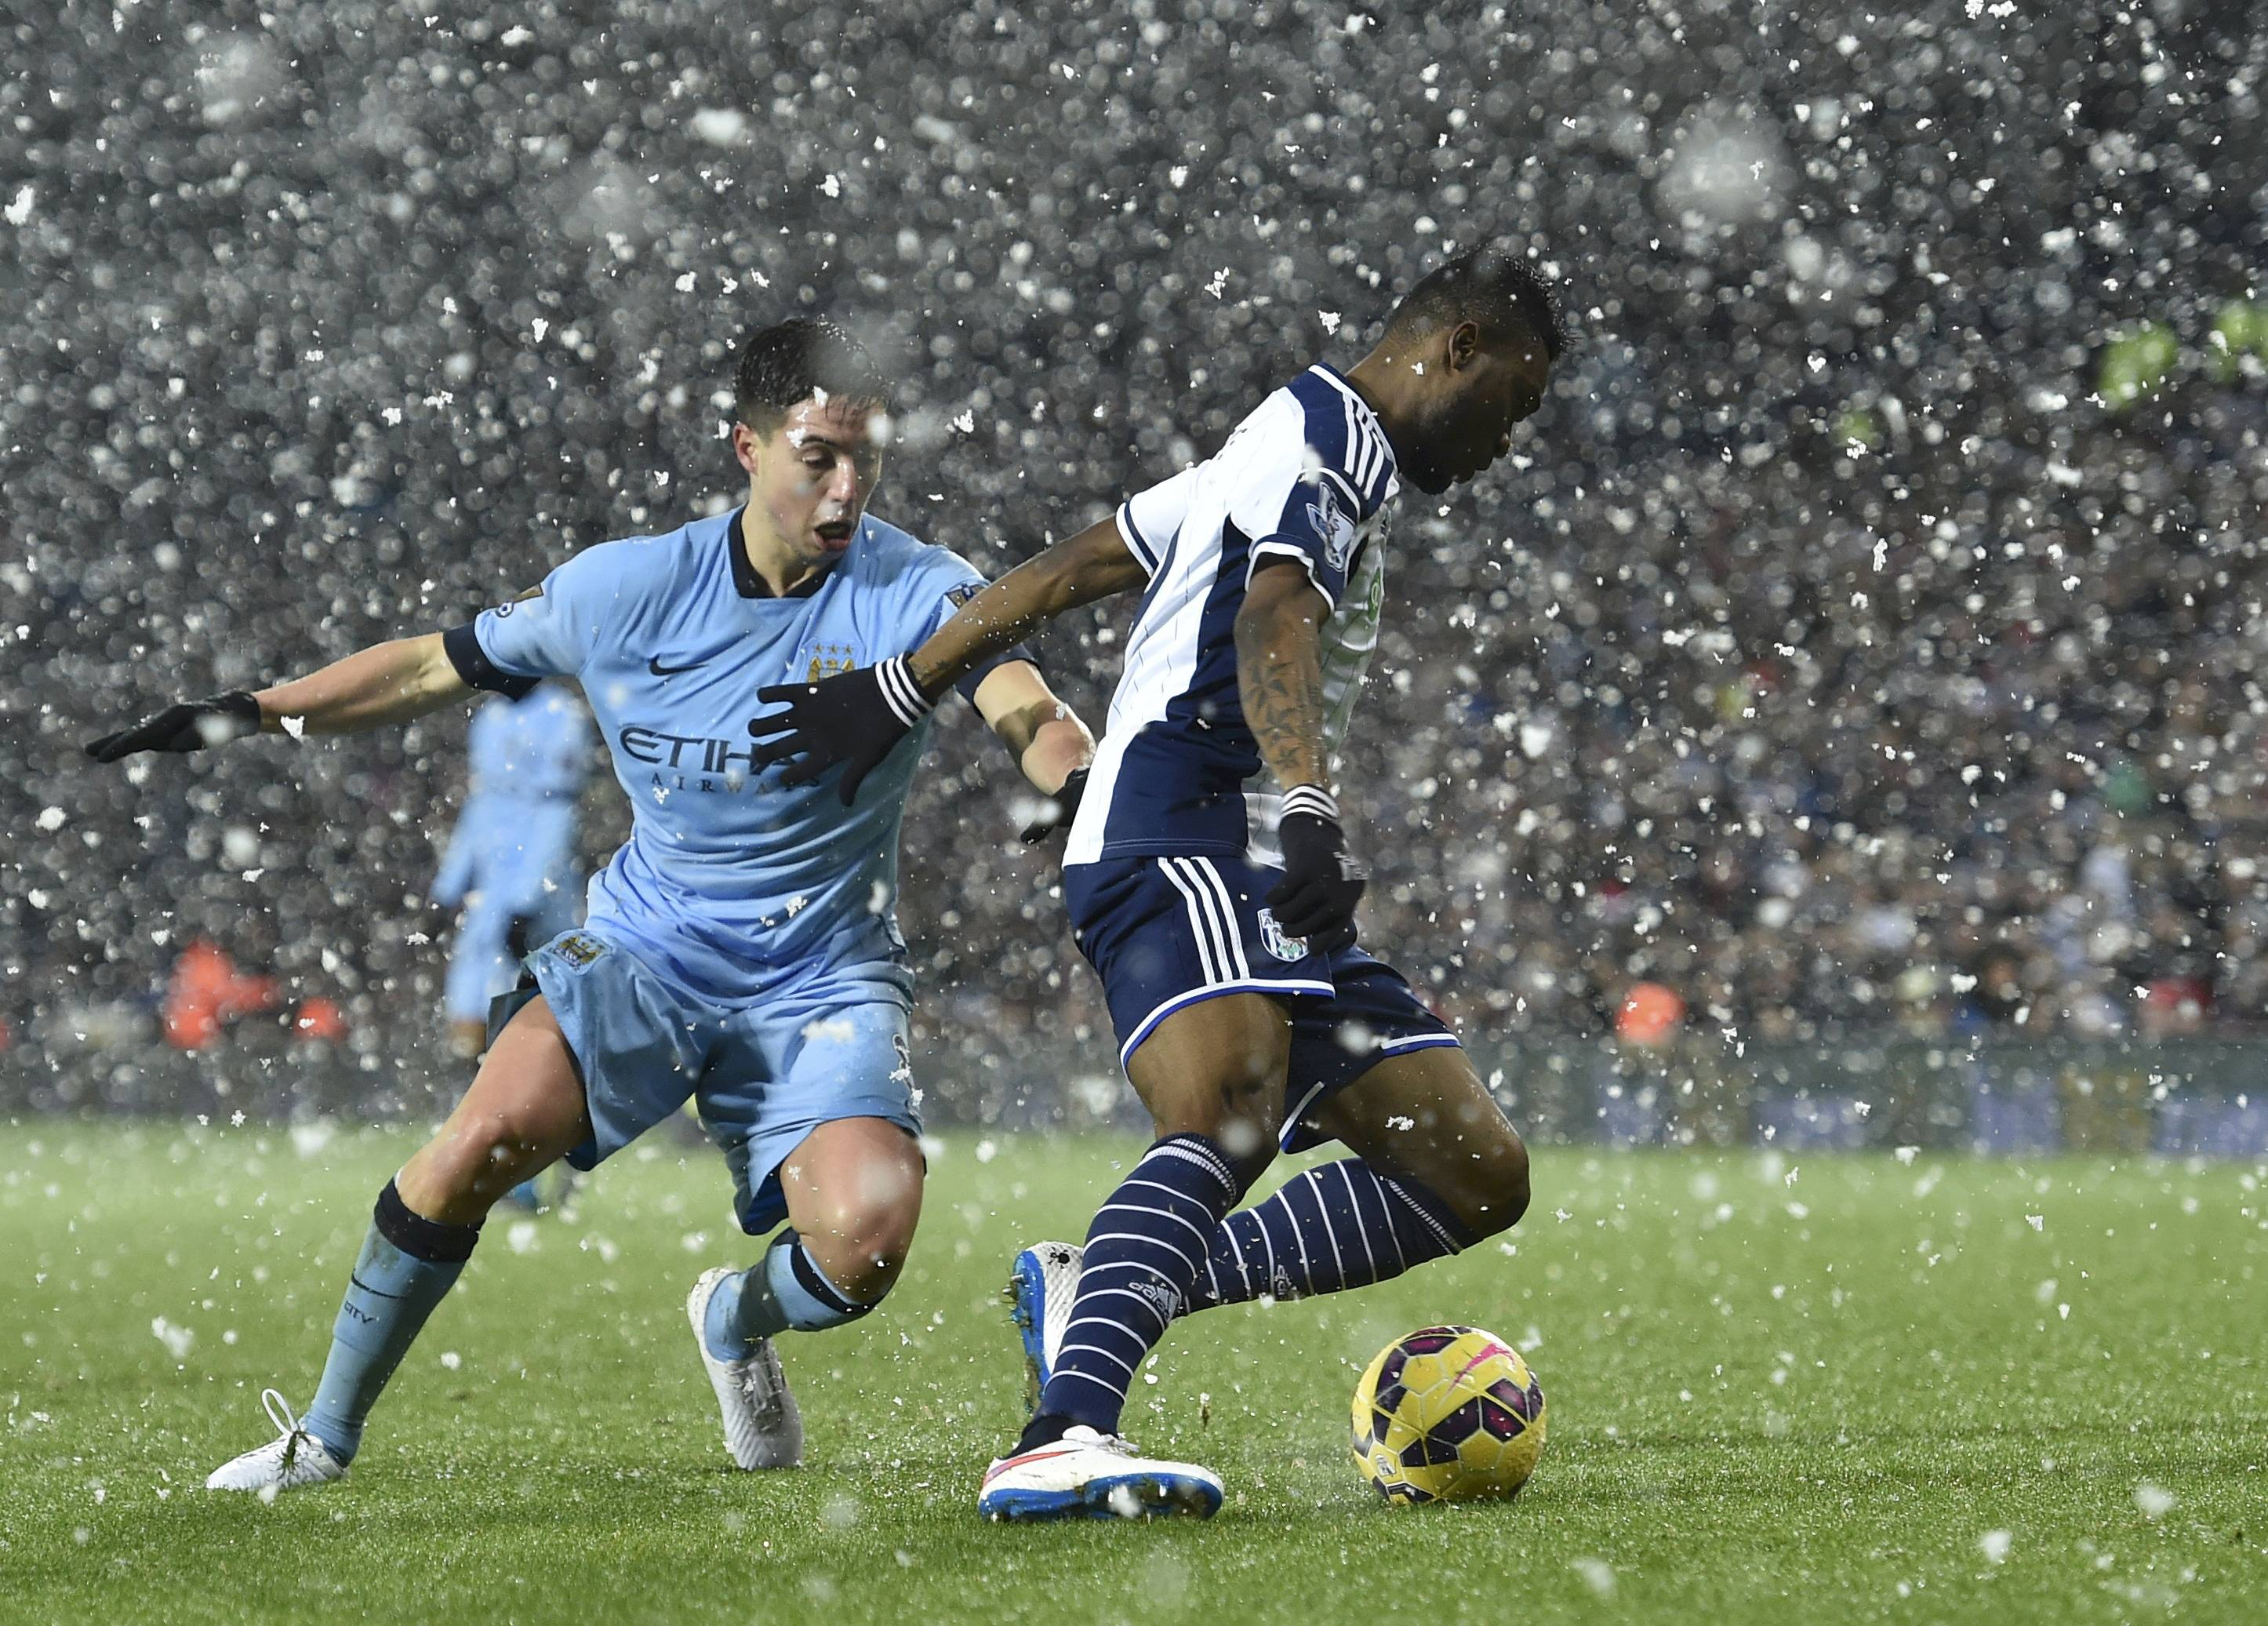 Manchester City's Samir Nasri challenges West Bromwich Albion's Brown Ideye during the English Premier League soccer match at The Hawthorns in West Bromwich